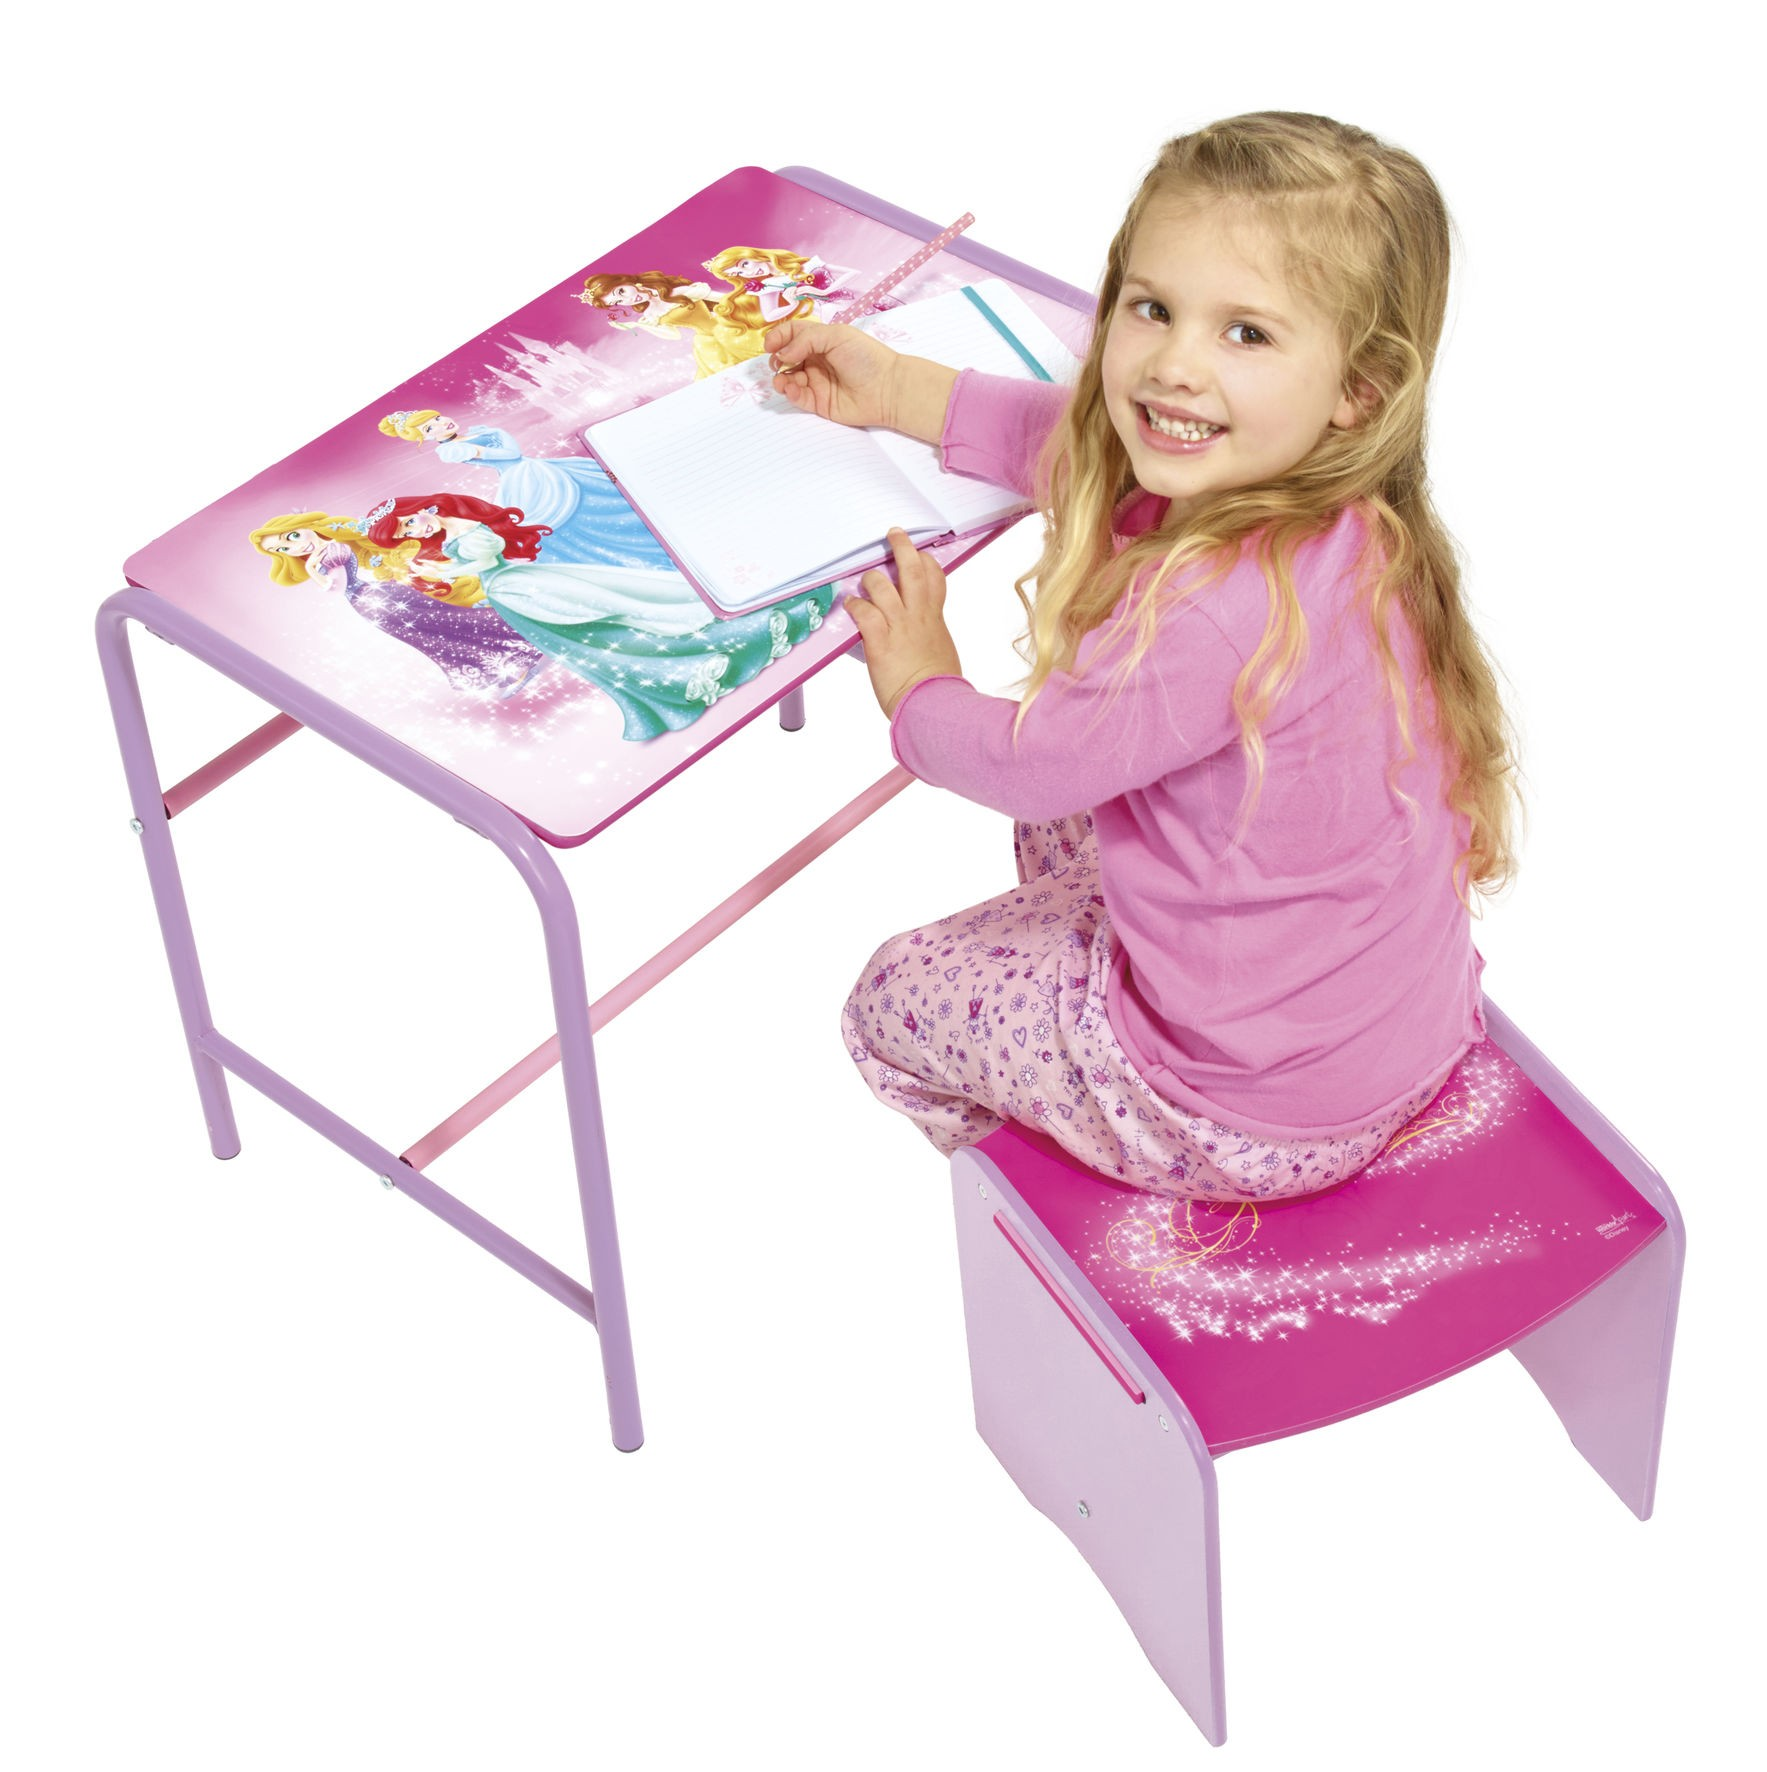 disney princess bureau met krukje babykamer winkel. Black Bedroom Furniture Sets. Home Design Ideas